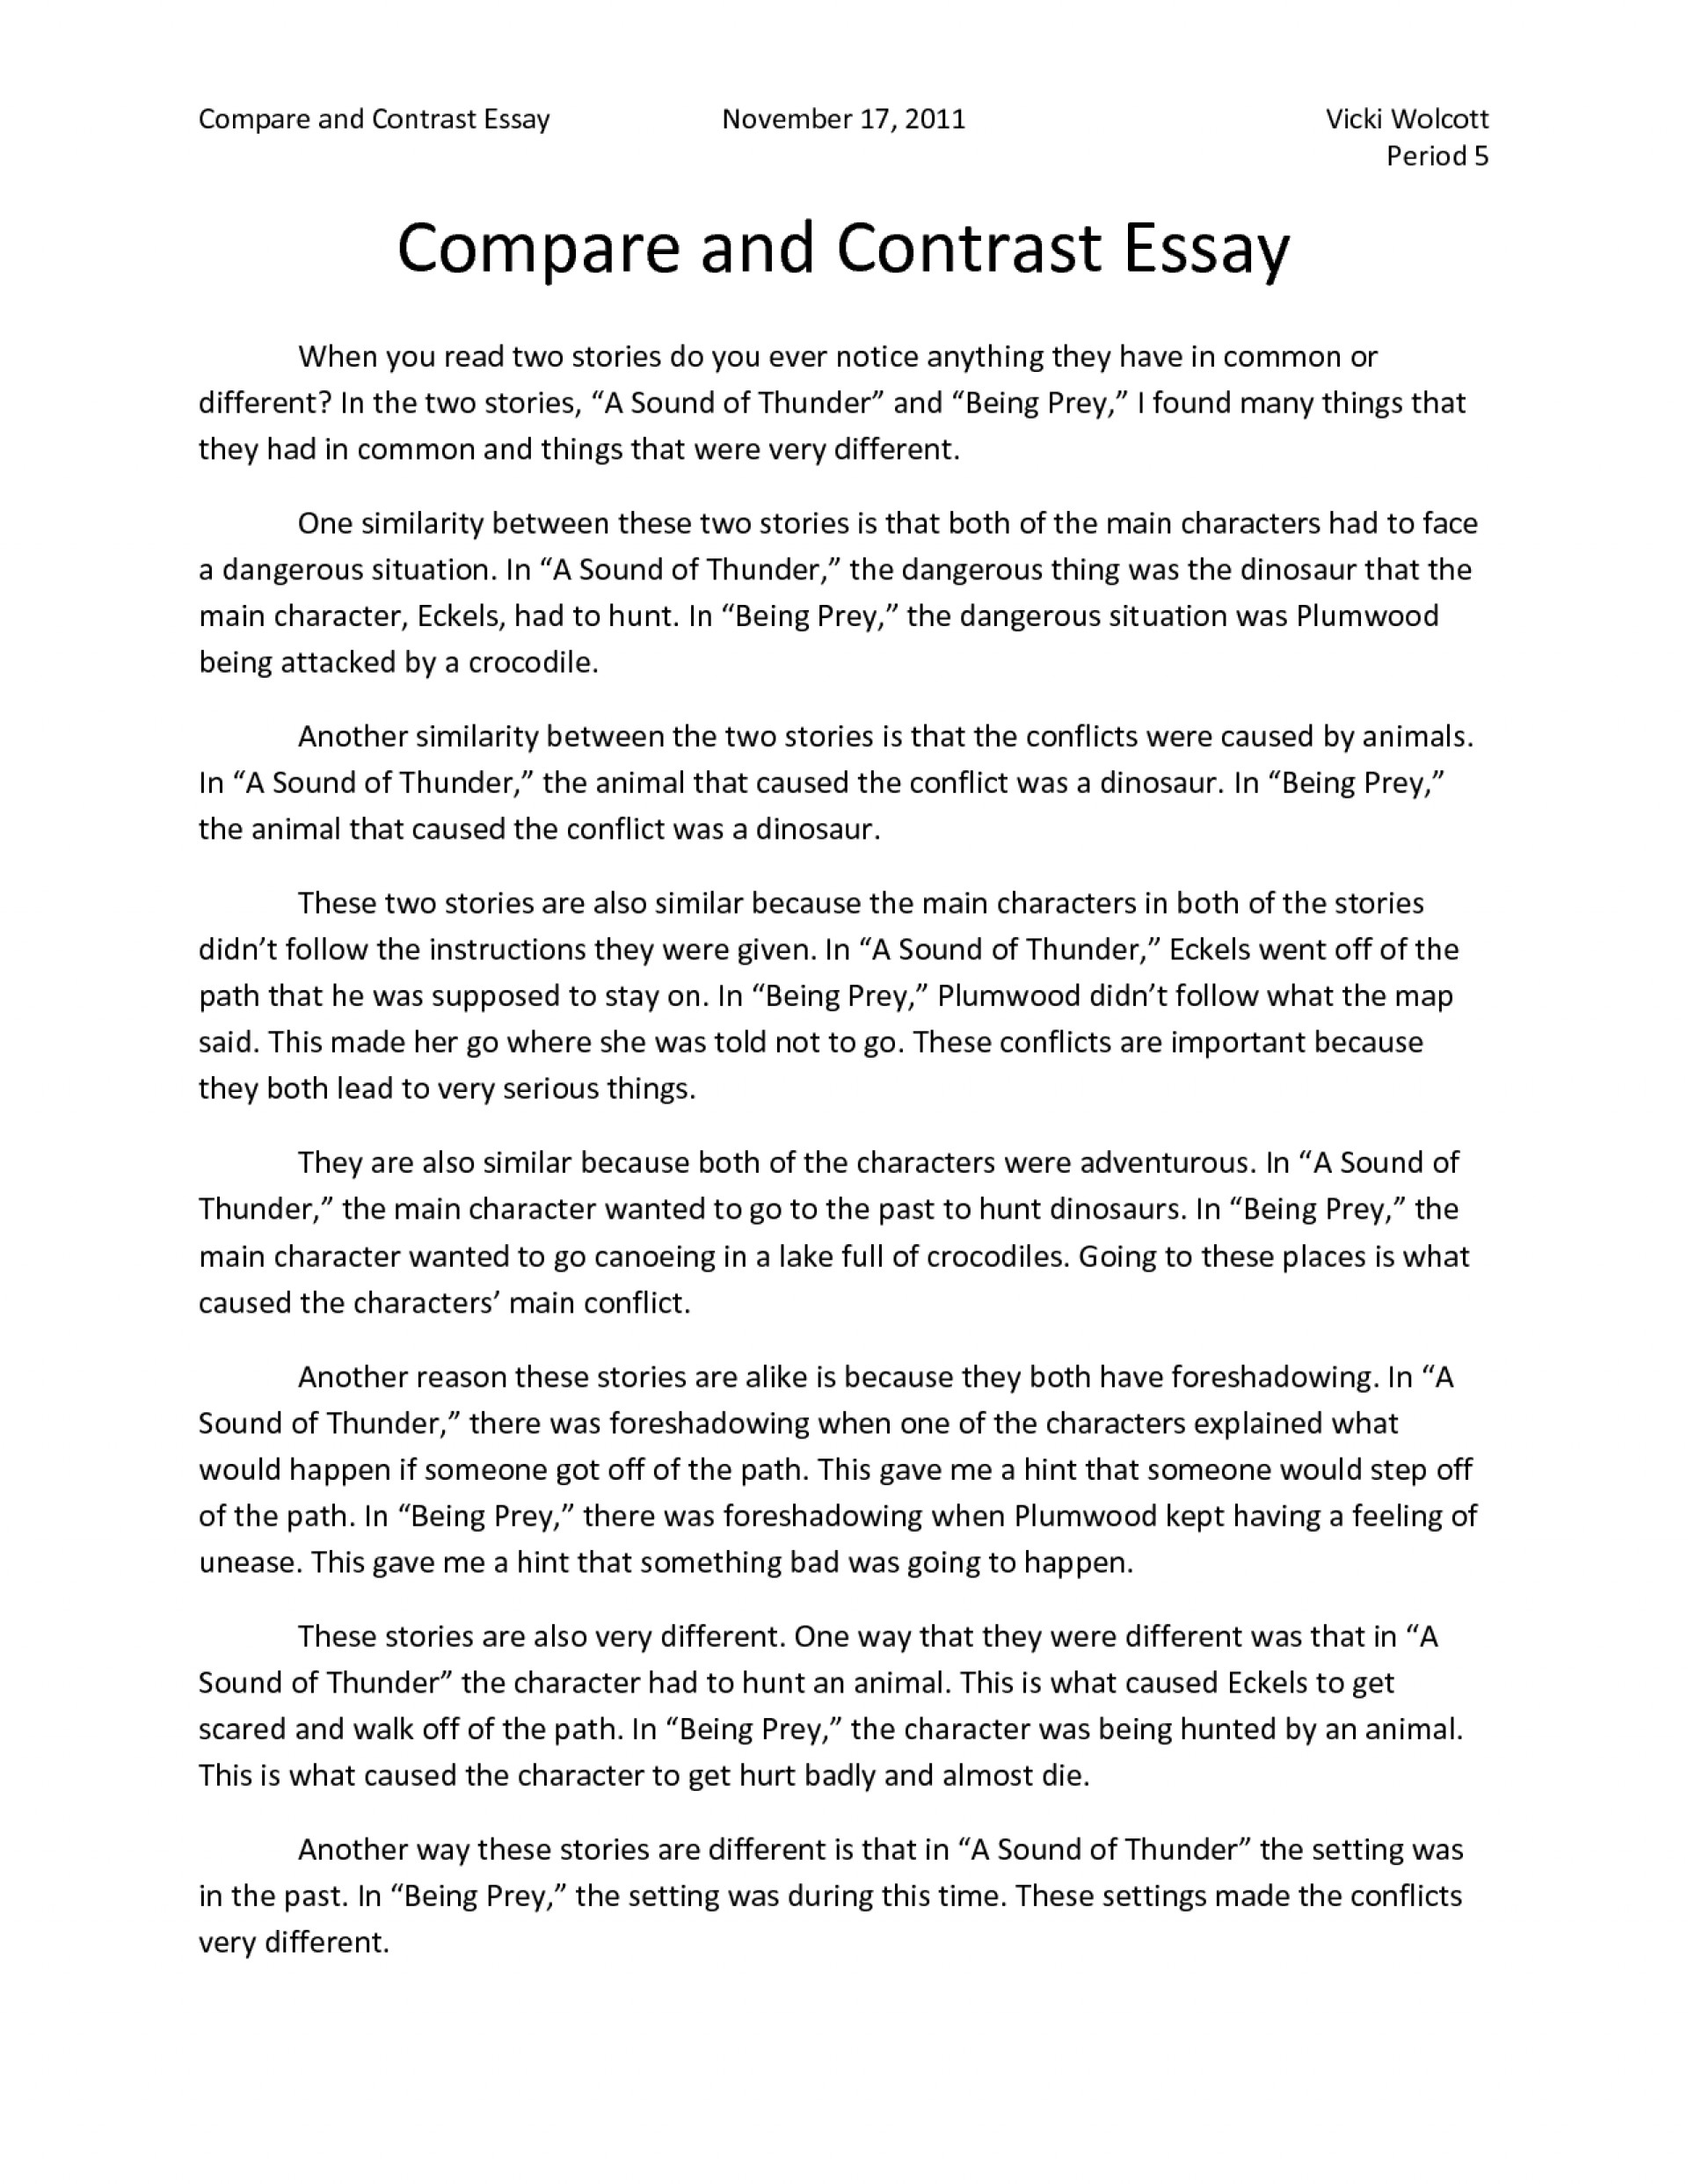 006 Compare And Contrastssay Template Gallery Drawing Art Throughout Collegexamples Introduction Question Scholarship Freedexcel Conclusionxtended Exceptional Contrast Essay For Middle School 8th Grade Examples 1920